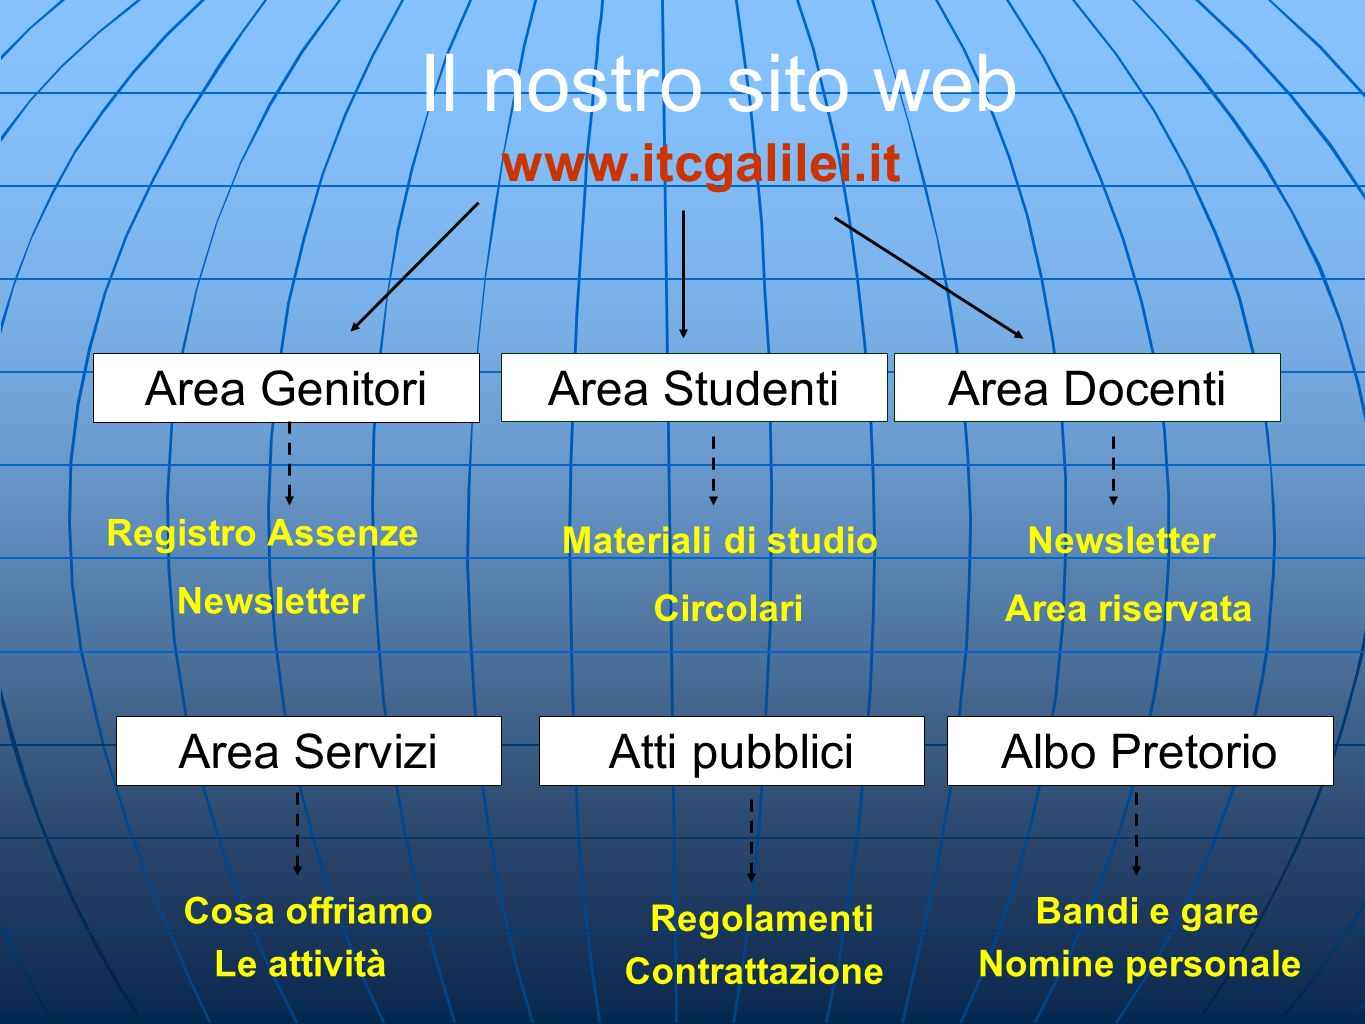 Il nostro sito web www.itcgalilei.it Area GenitoriArea StudentiArea Docenti Registro Assenze Newsletter Materiali di studio Circolari Newsletter Area